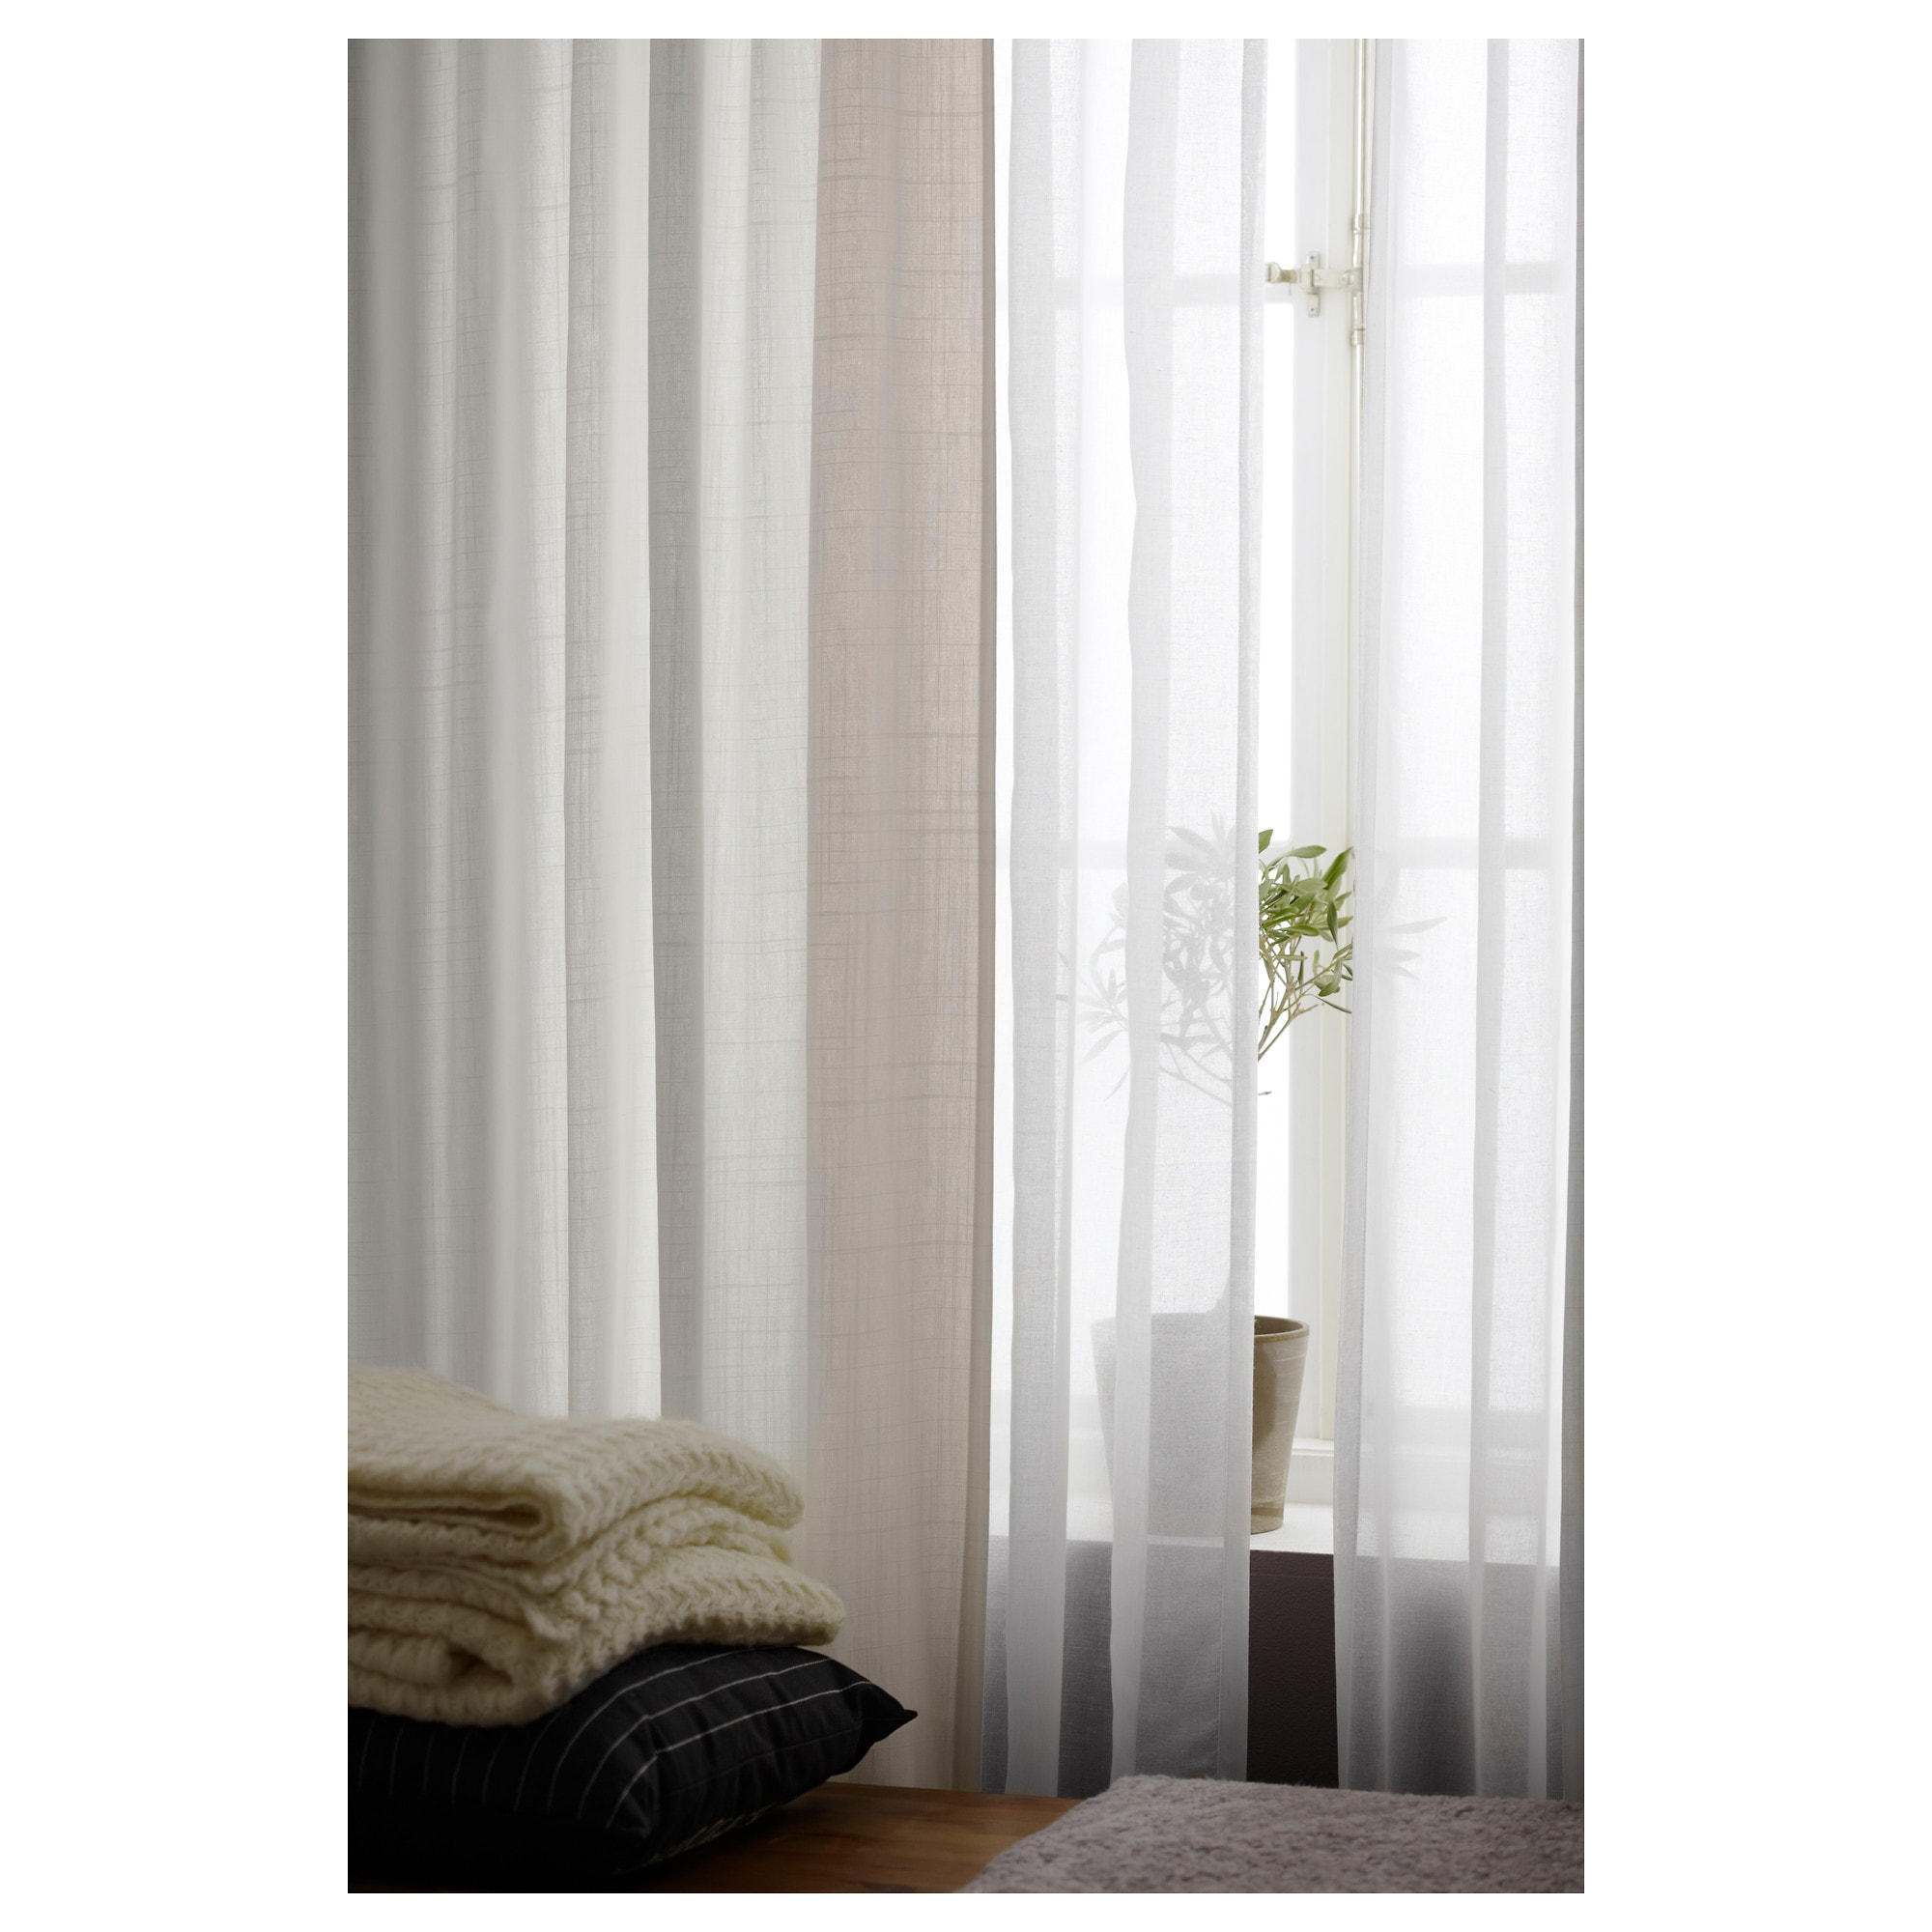 RITVA Curtains with tie-backs, 1 pair - 57x98 \